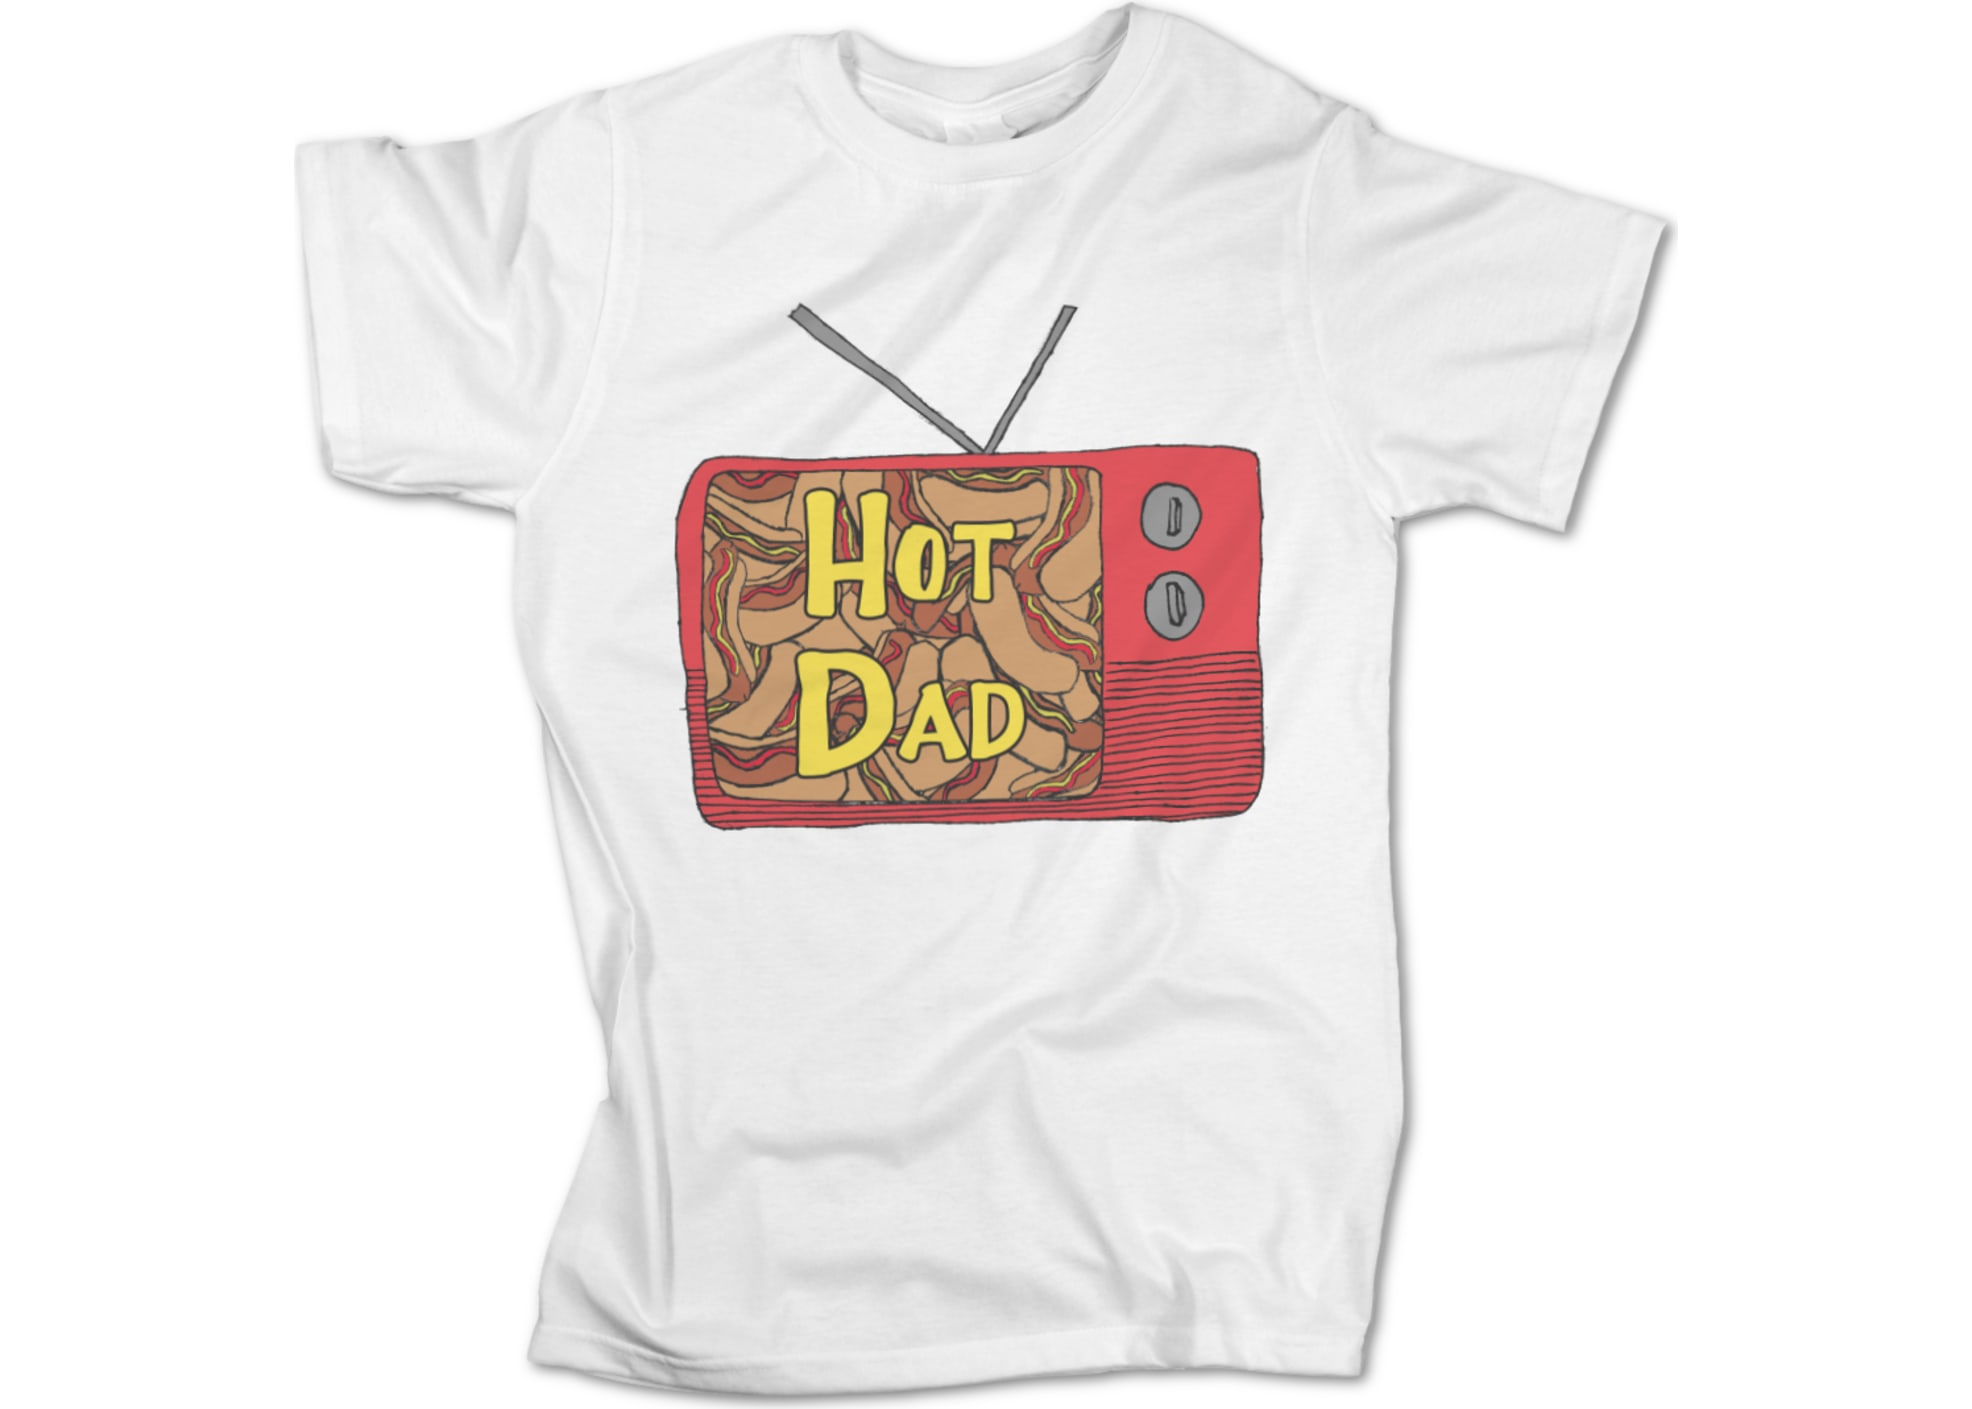 Hot dad tv dad 1472399117